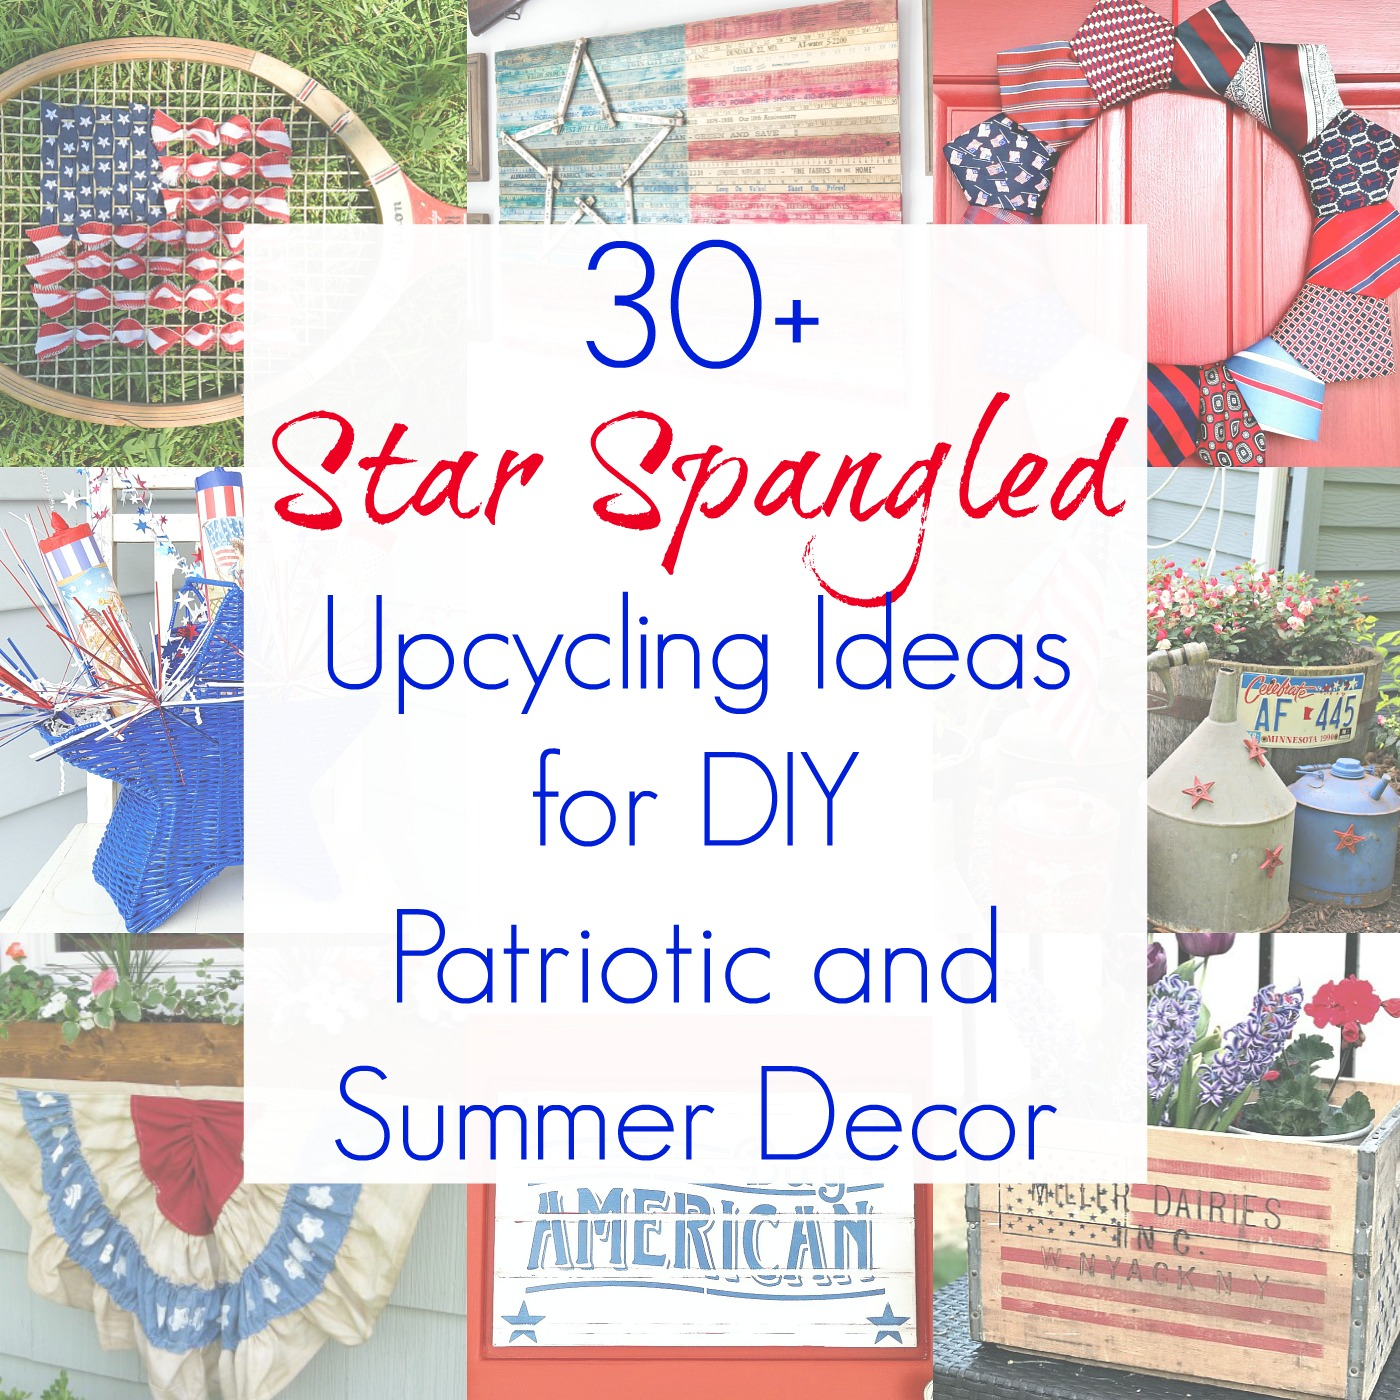 Upcycling Ideas and Repurposed projects for Patriotic decor and Independence Day decorations compiled by Sadie Seasongoods